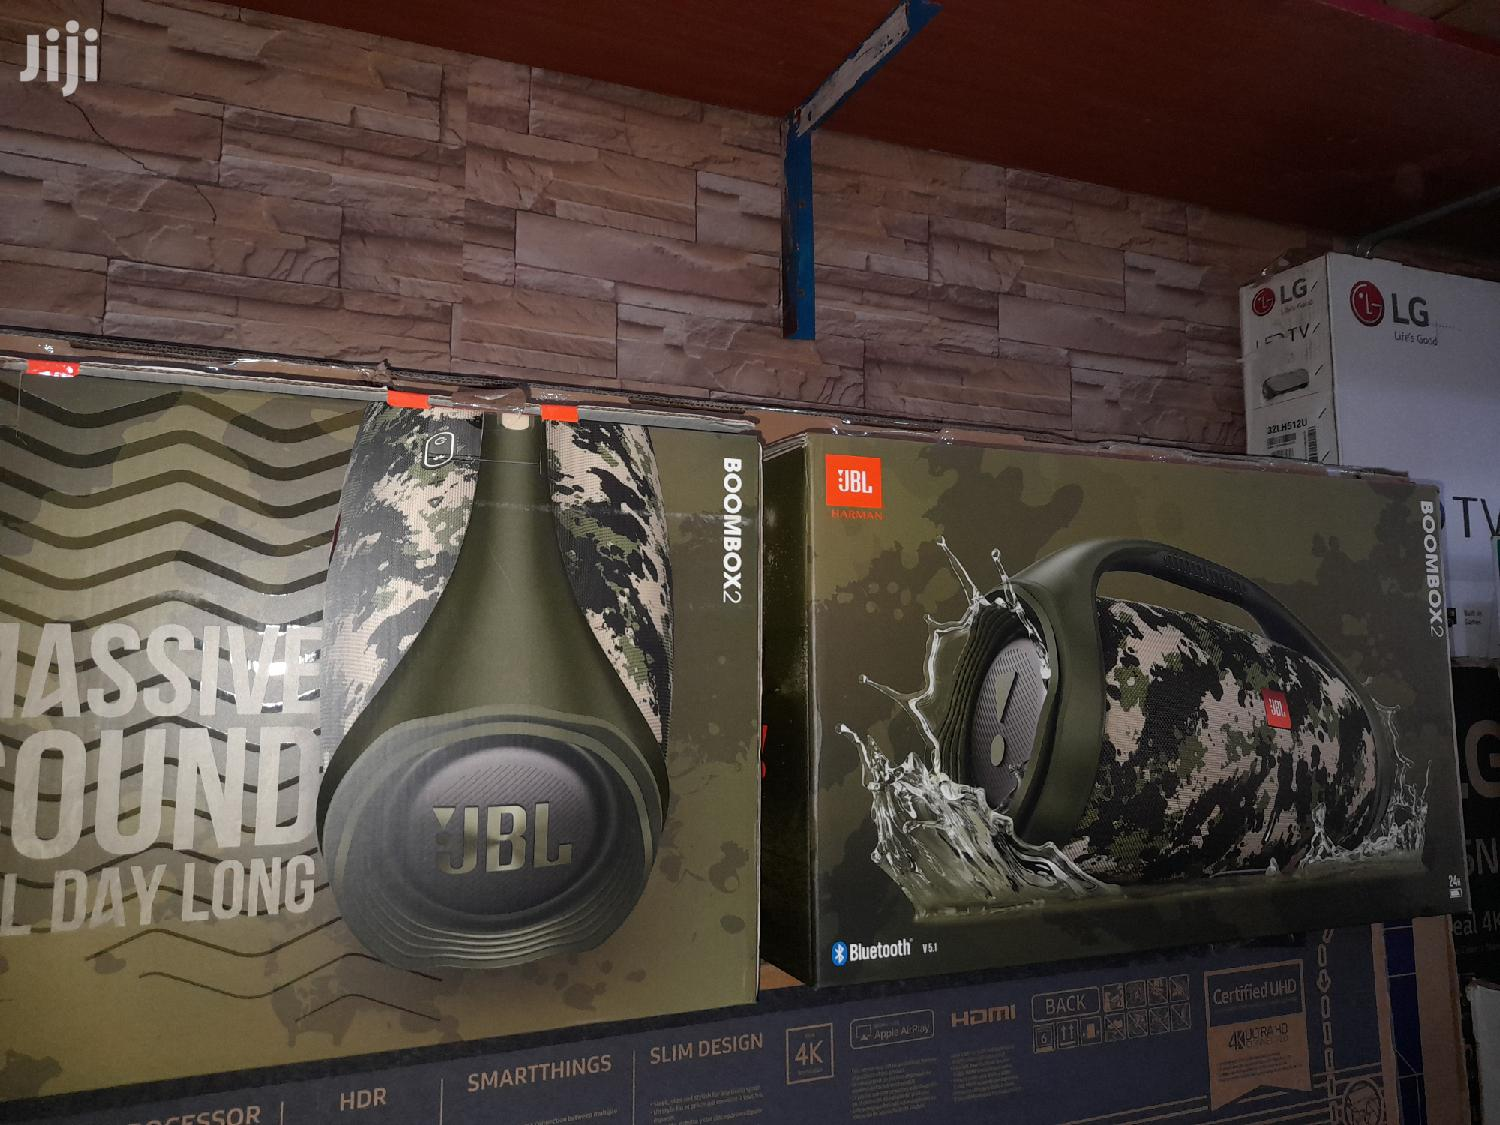 JBL Boombox 2 Camouflage Powerful Wireless Speaker | Audio & Music Equipment for sale in Kampala, Central Region, Uganda